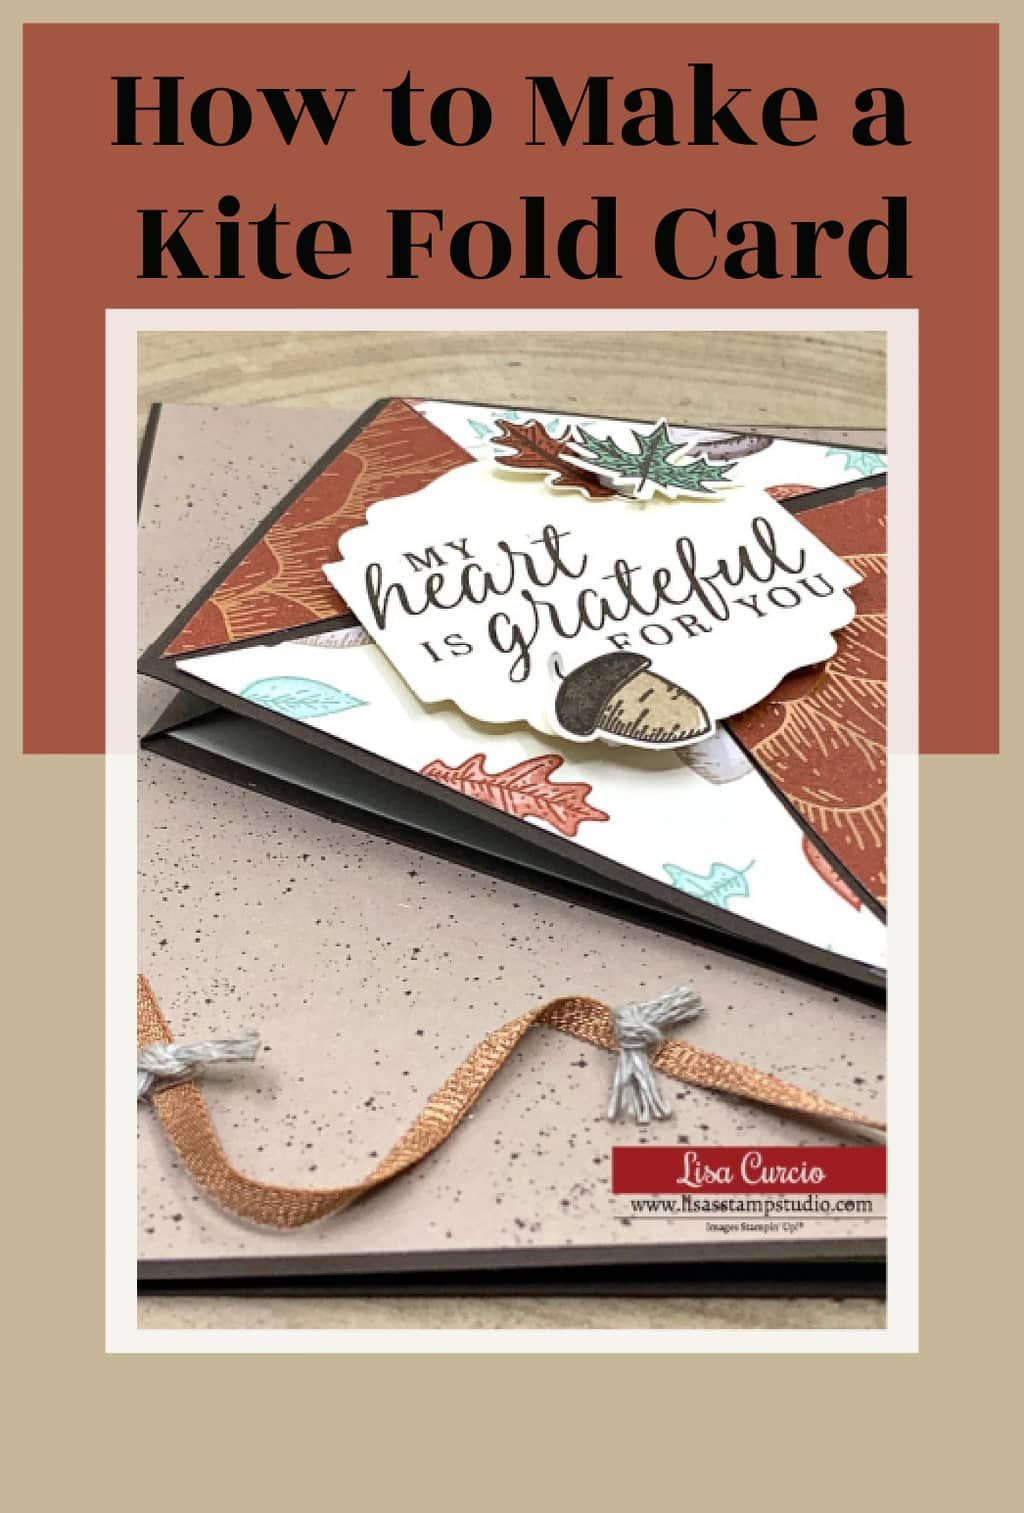 Learn how to make a kite fold card that packs a WOW! If you love fun fold cards and unique card folds then this is the project for you! Watch the video tutorial at www.lisasstampstudio.com #kitefoldcard #kitefoldcardtutorial #cardmaking #cardmakingtutorials #cardmakingvideos #handmadecards #diycards #funfoldcards #lisacurcio #lisasstampstudio #stampinup #stampinupcards